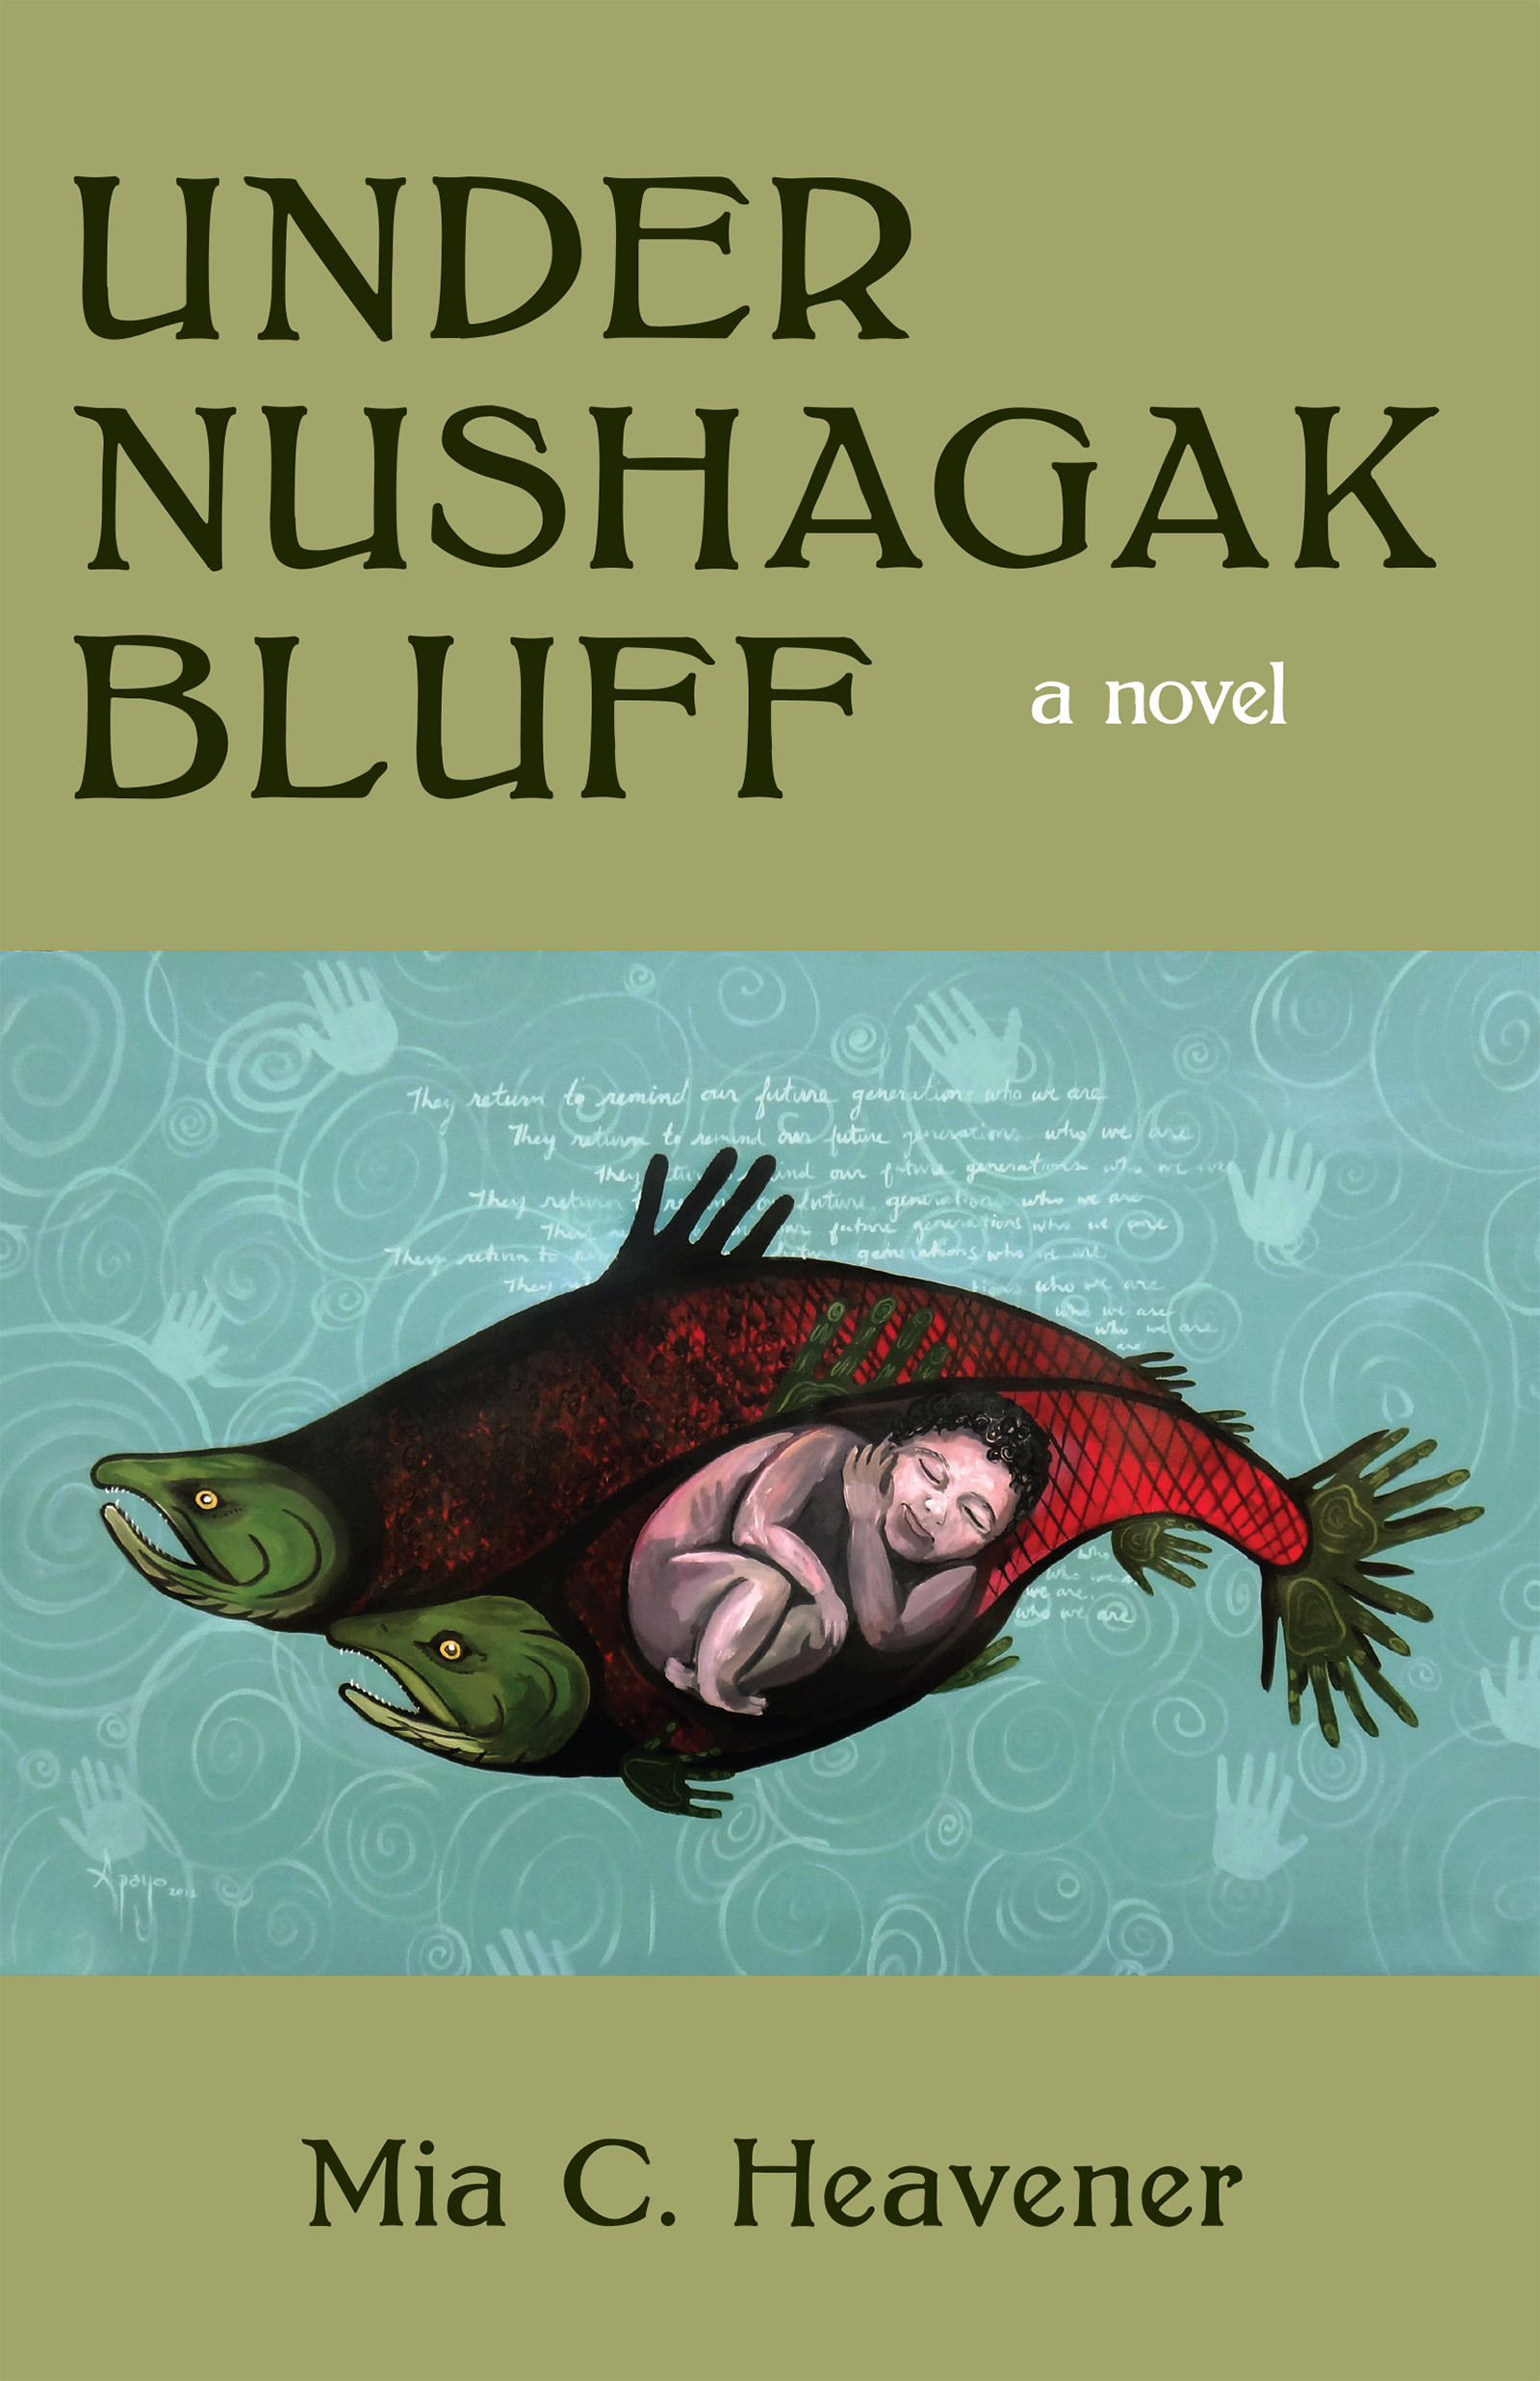 A green background with a drawing of two green and red fish with a baby inside one of the stomachs of one of the fishes and dark green script that reads Under Nushagak Bluff a novel by Mia C. Heavener.